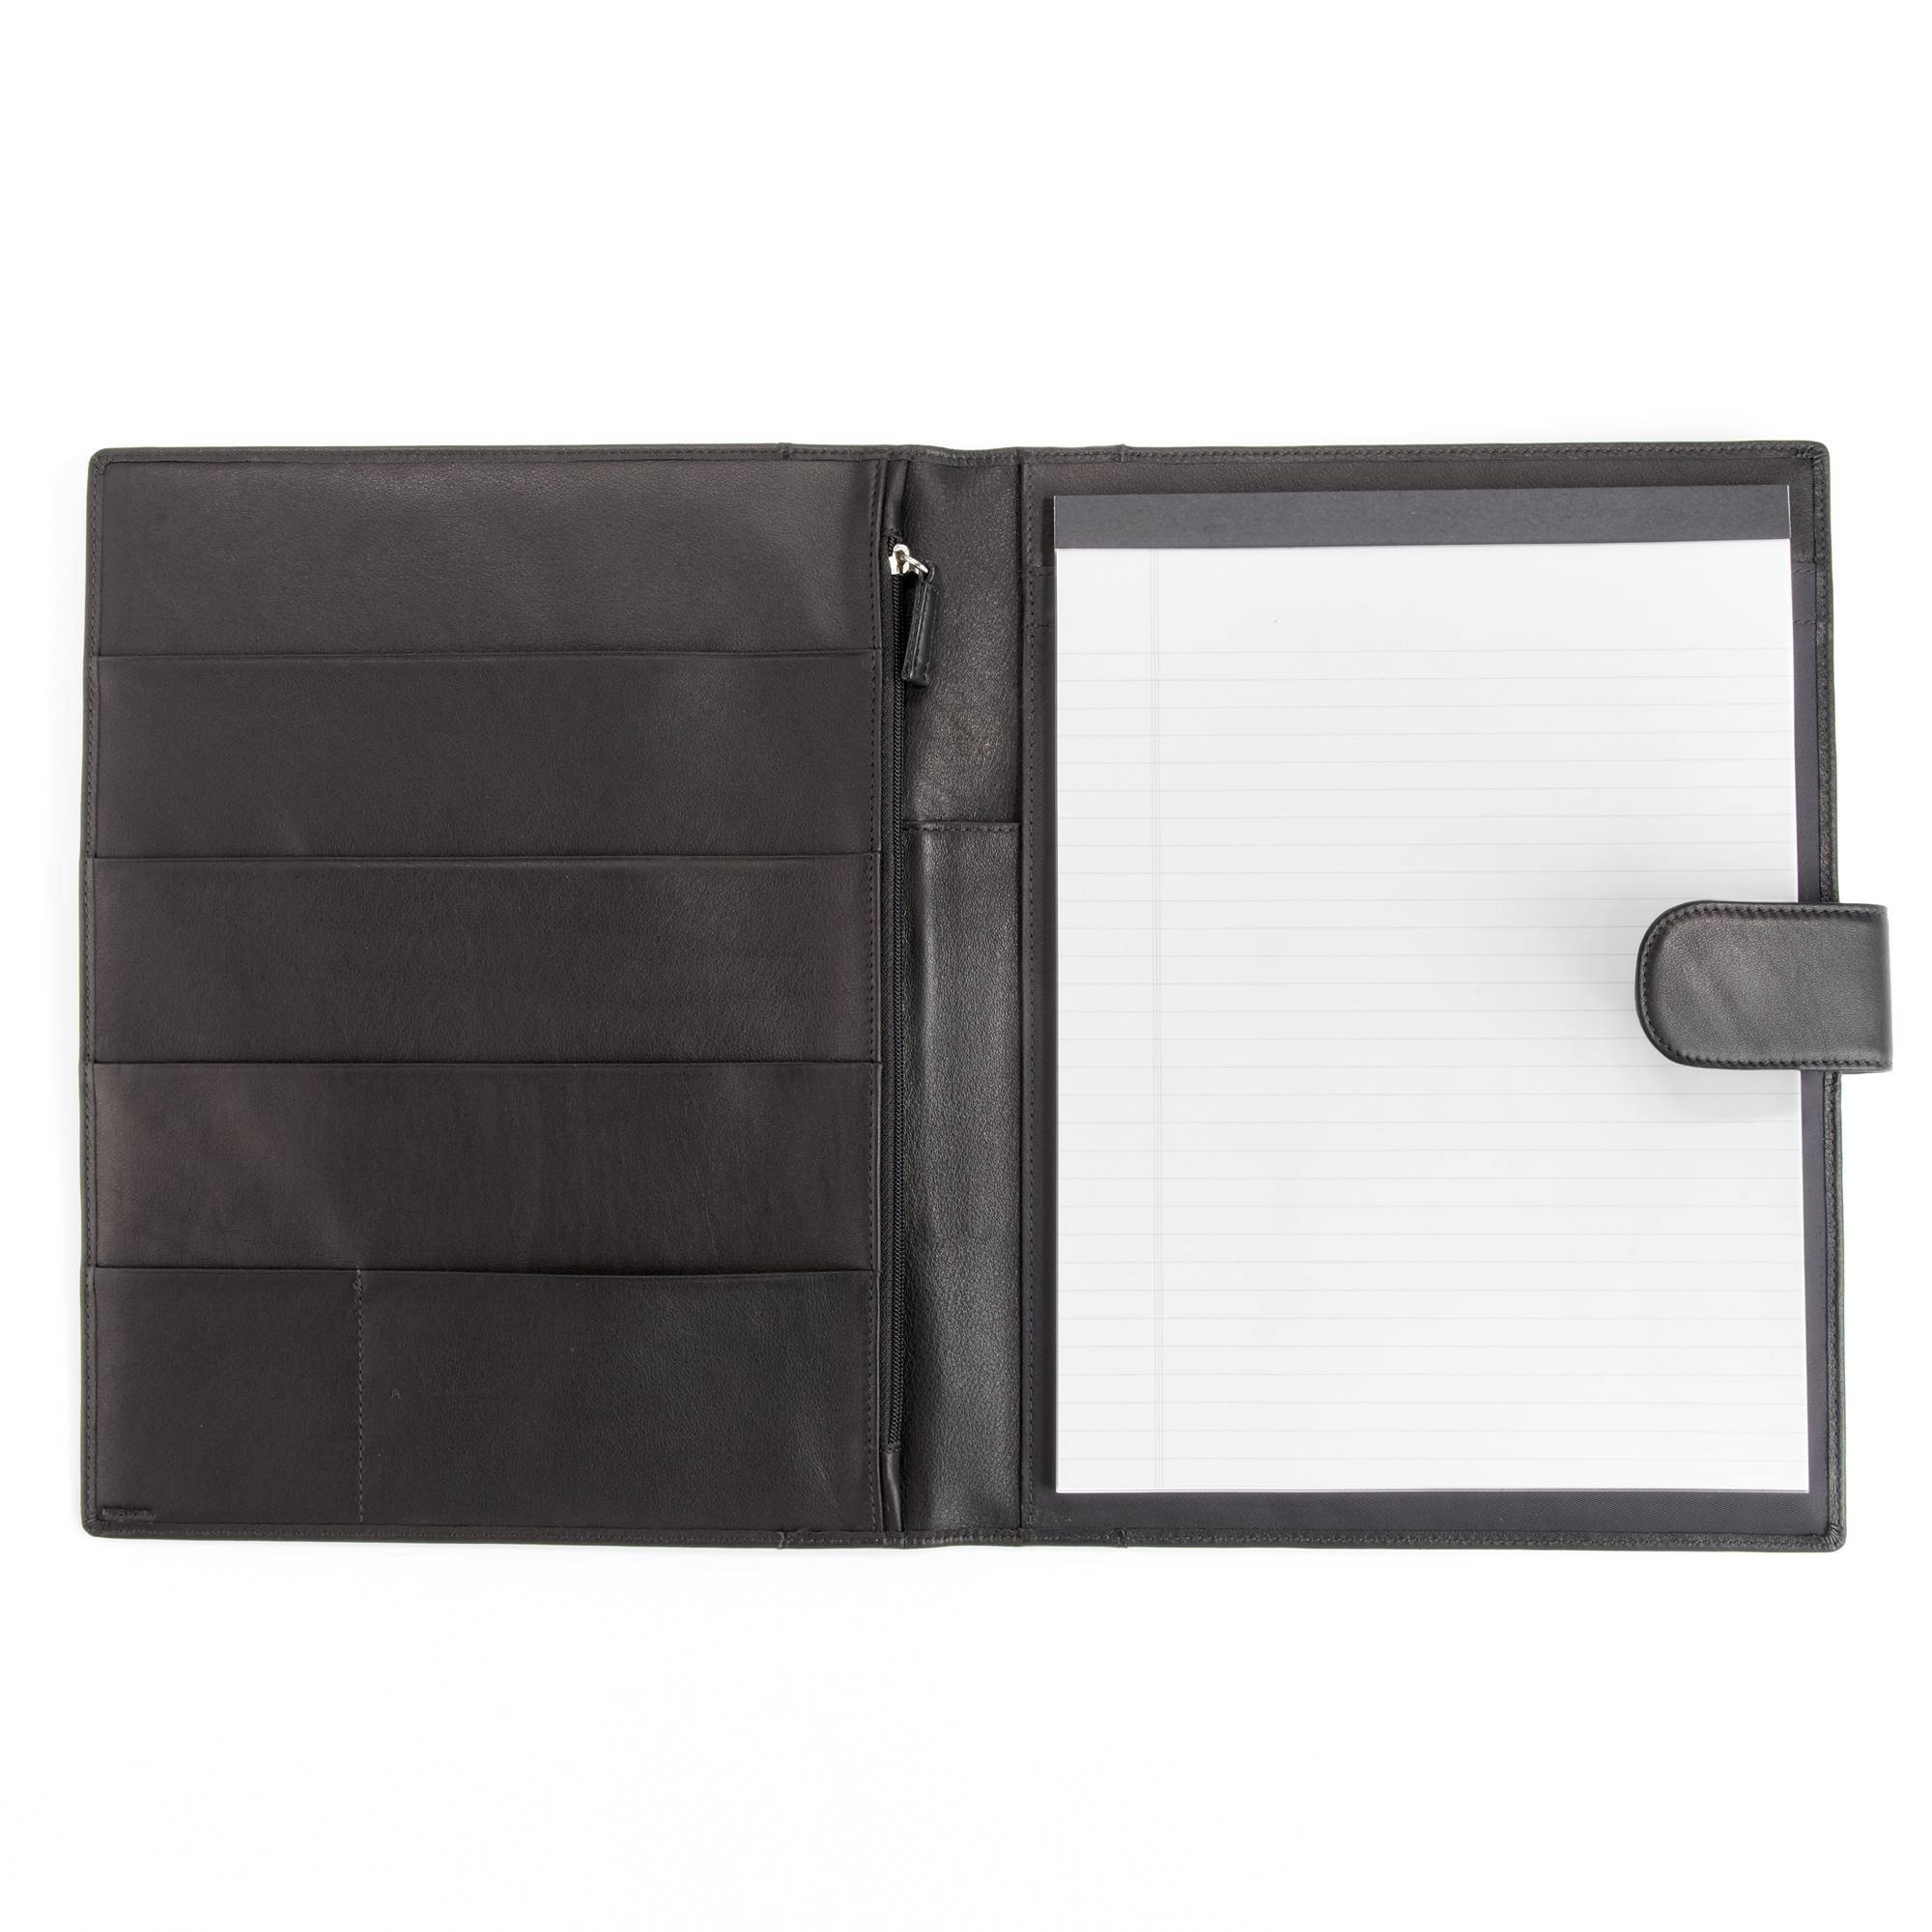 Leatherology Organizer Portfolio with Tablet Pocket & Magnetic Closure - Full Grain Leather - Black Onyx (black)